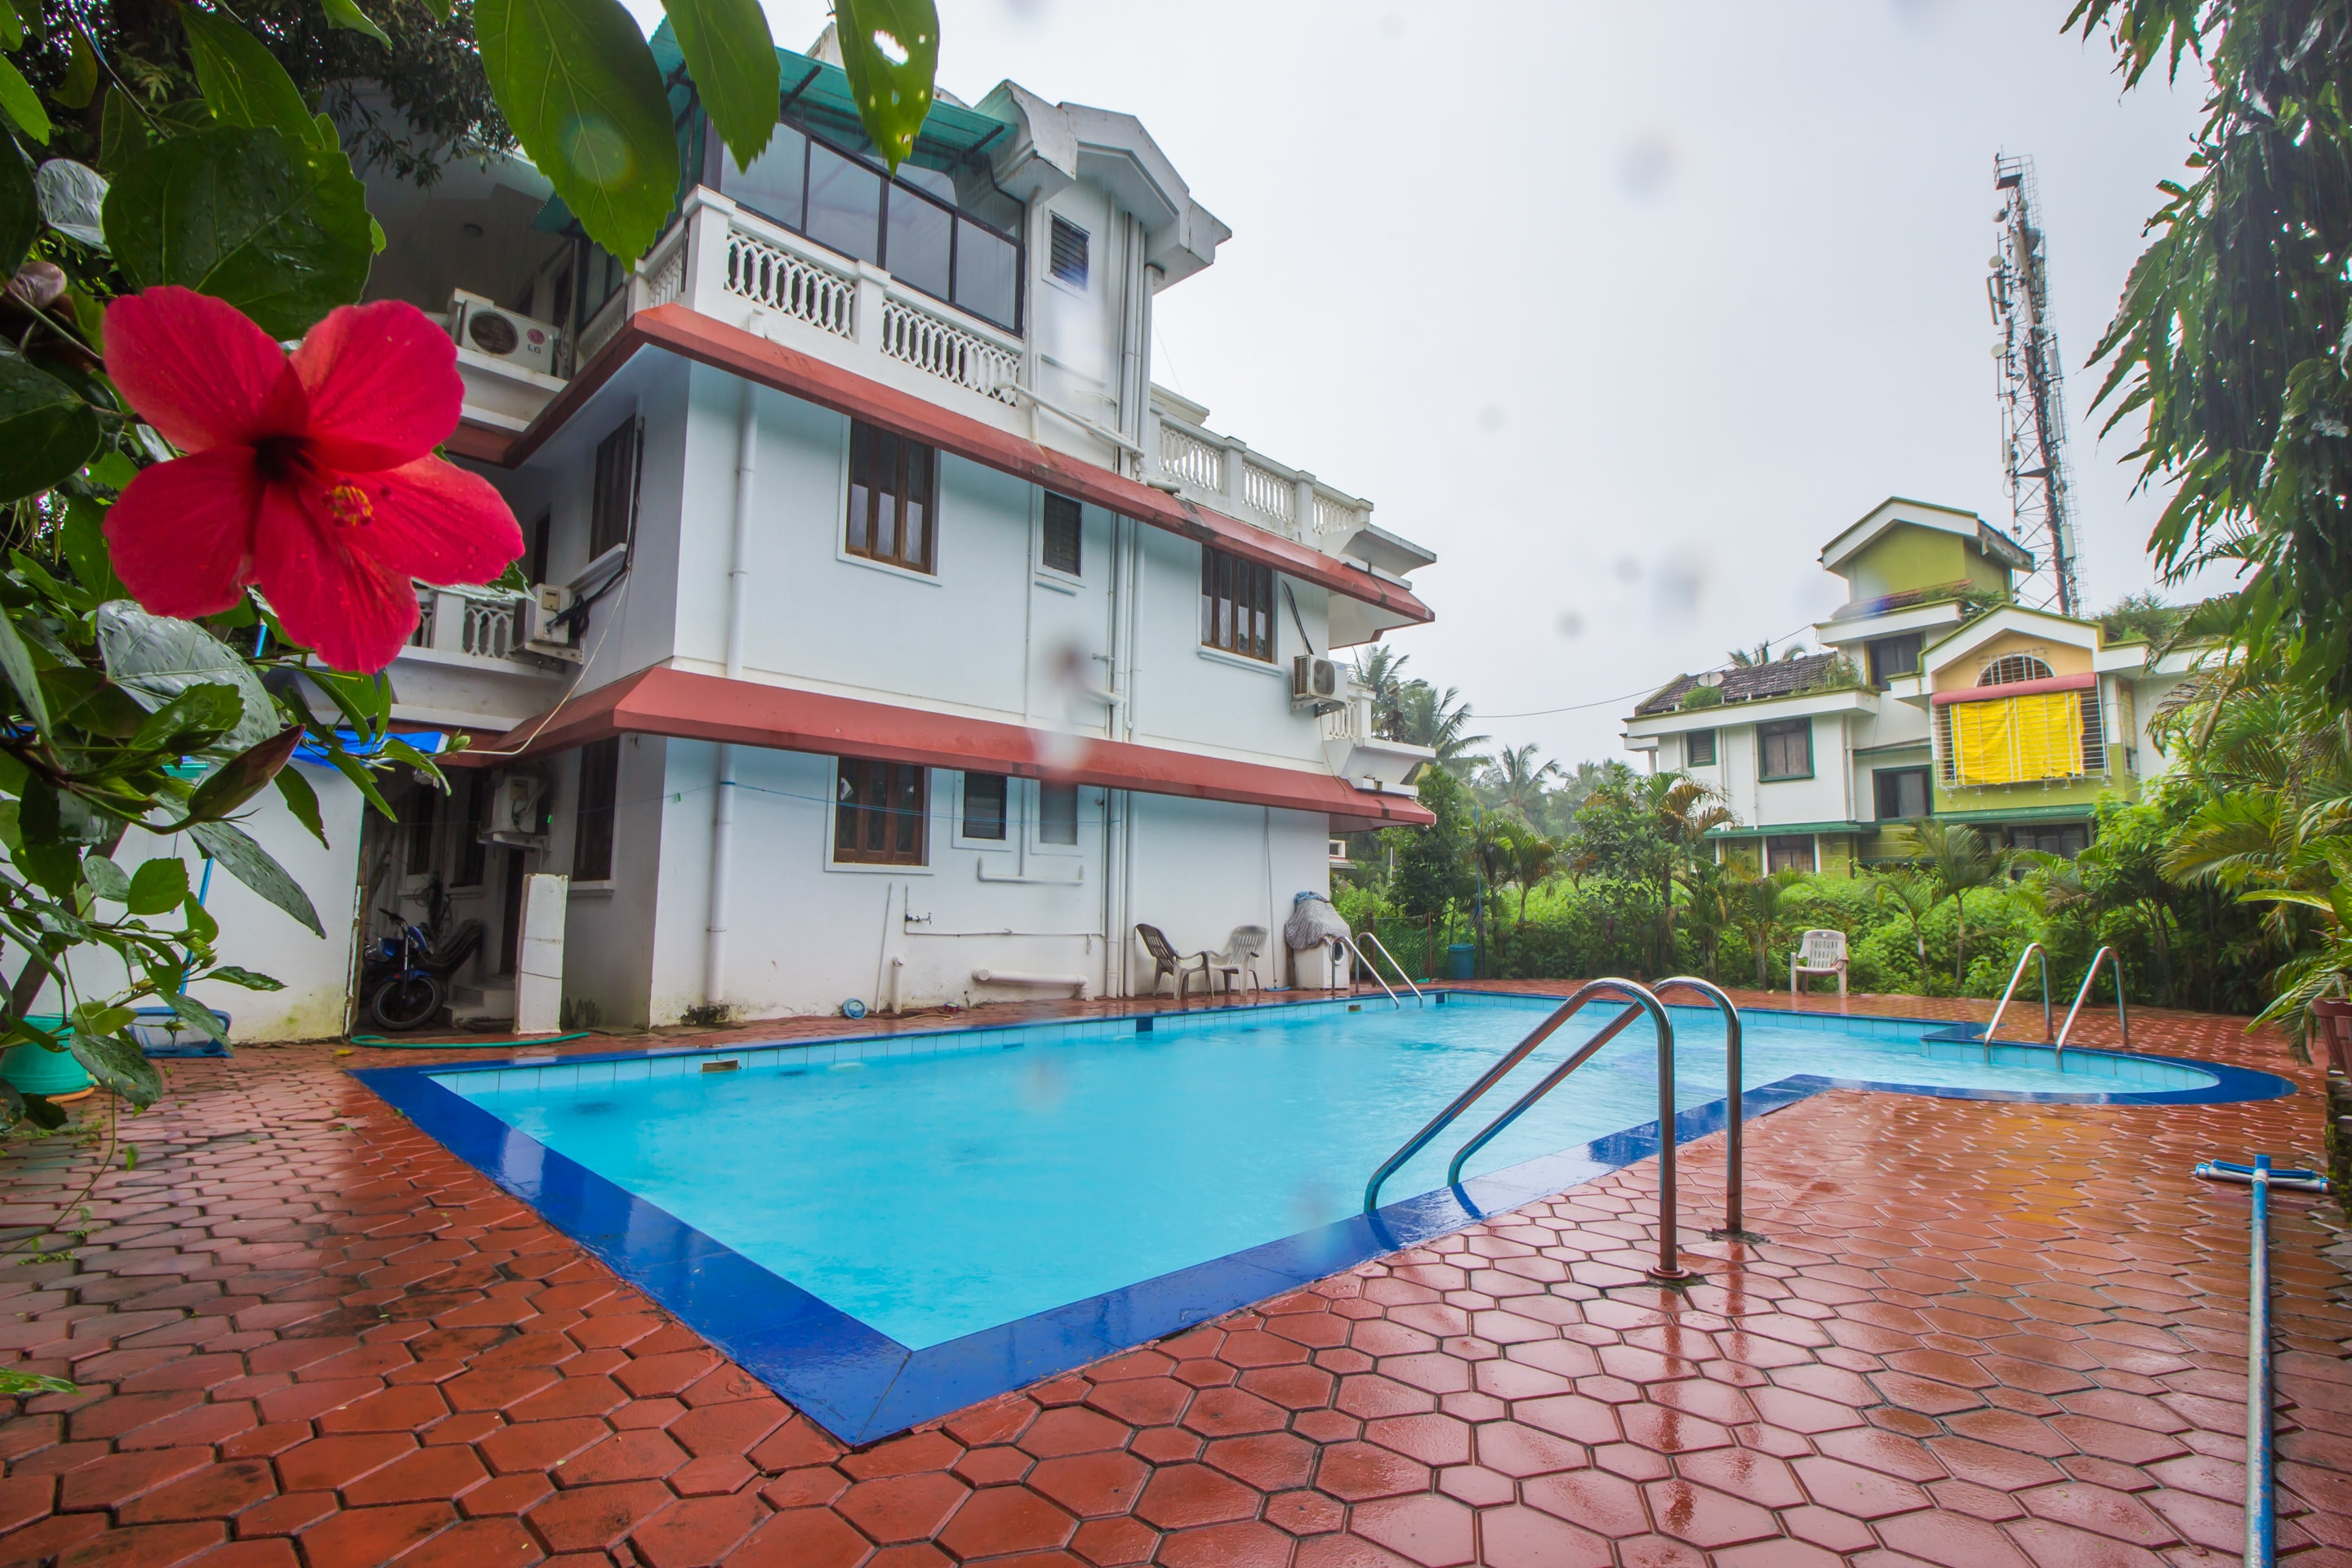 Hotel Gallarey OYO Home 18754 Pool View 1BHK